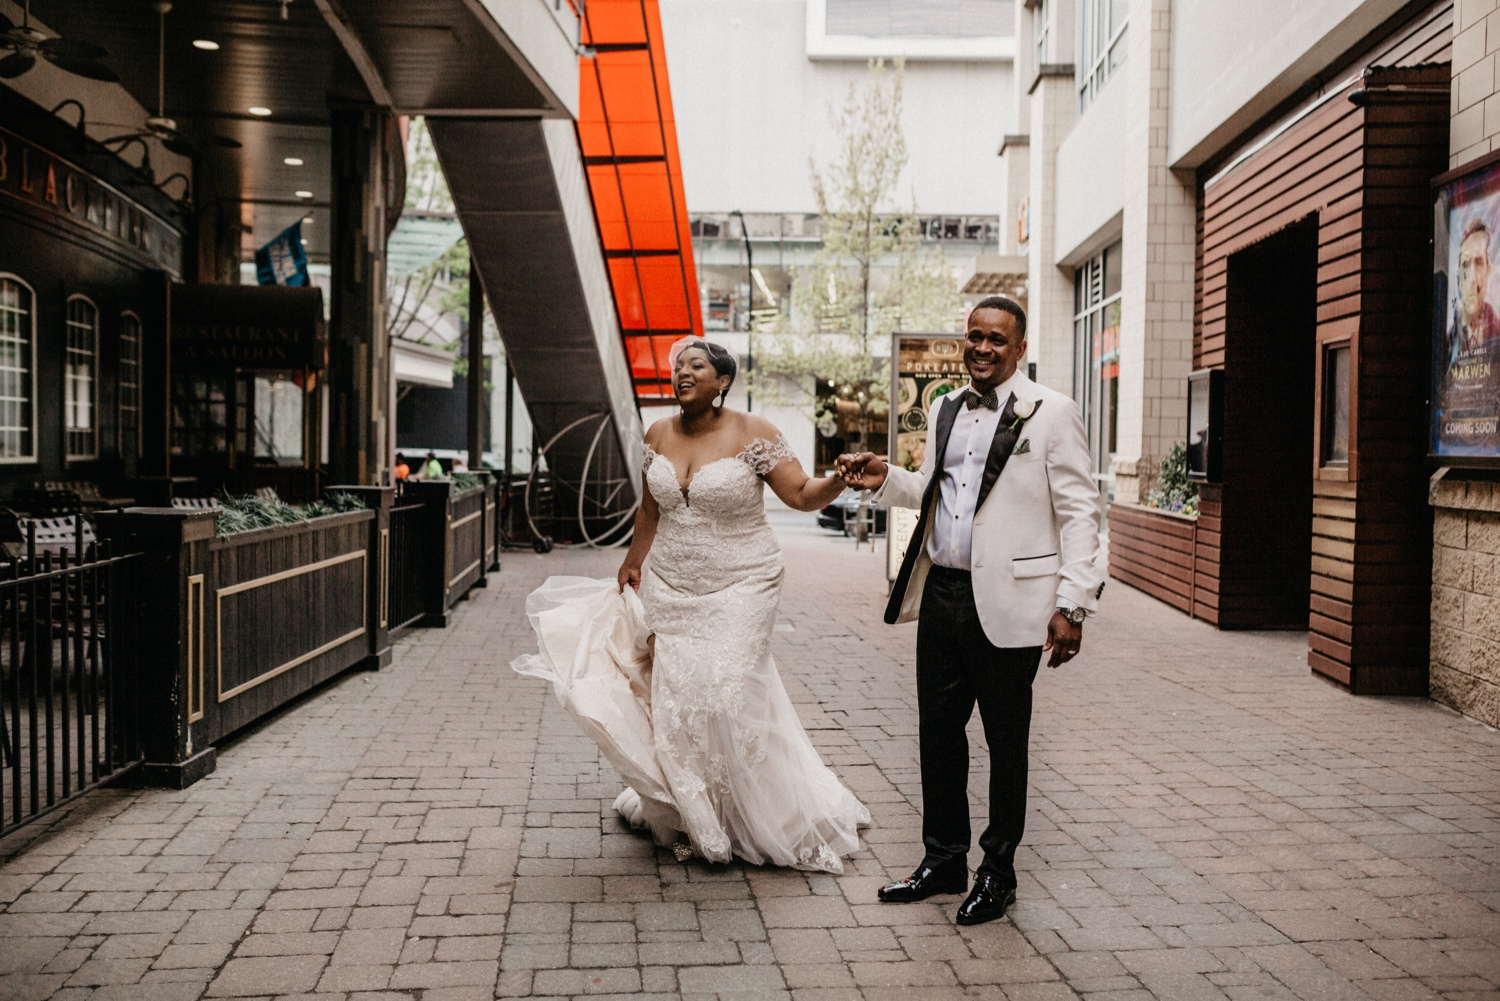 52_Ritz-carlton-wedding_charlotteNC_charlotteweddingphotographer.jpg